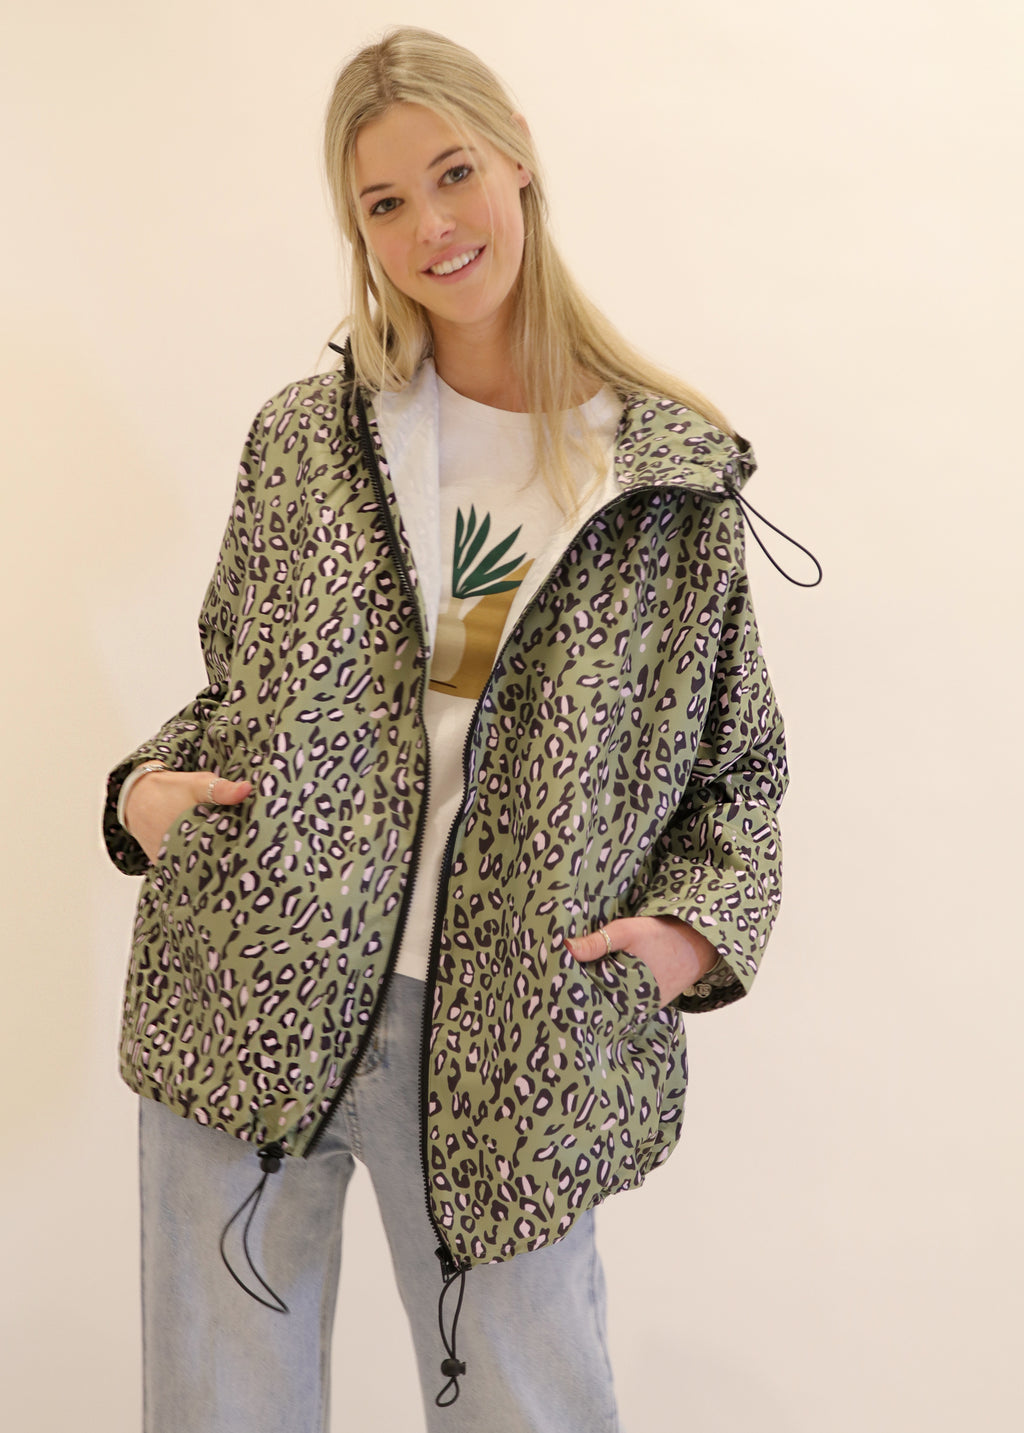 Graphic Leopard Print Melbourne Design Lifestyle Raincoat In Green